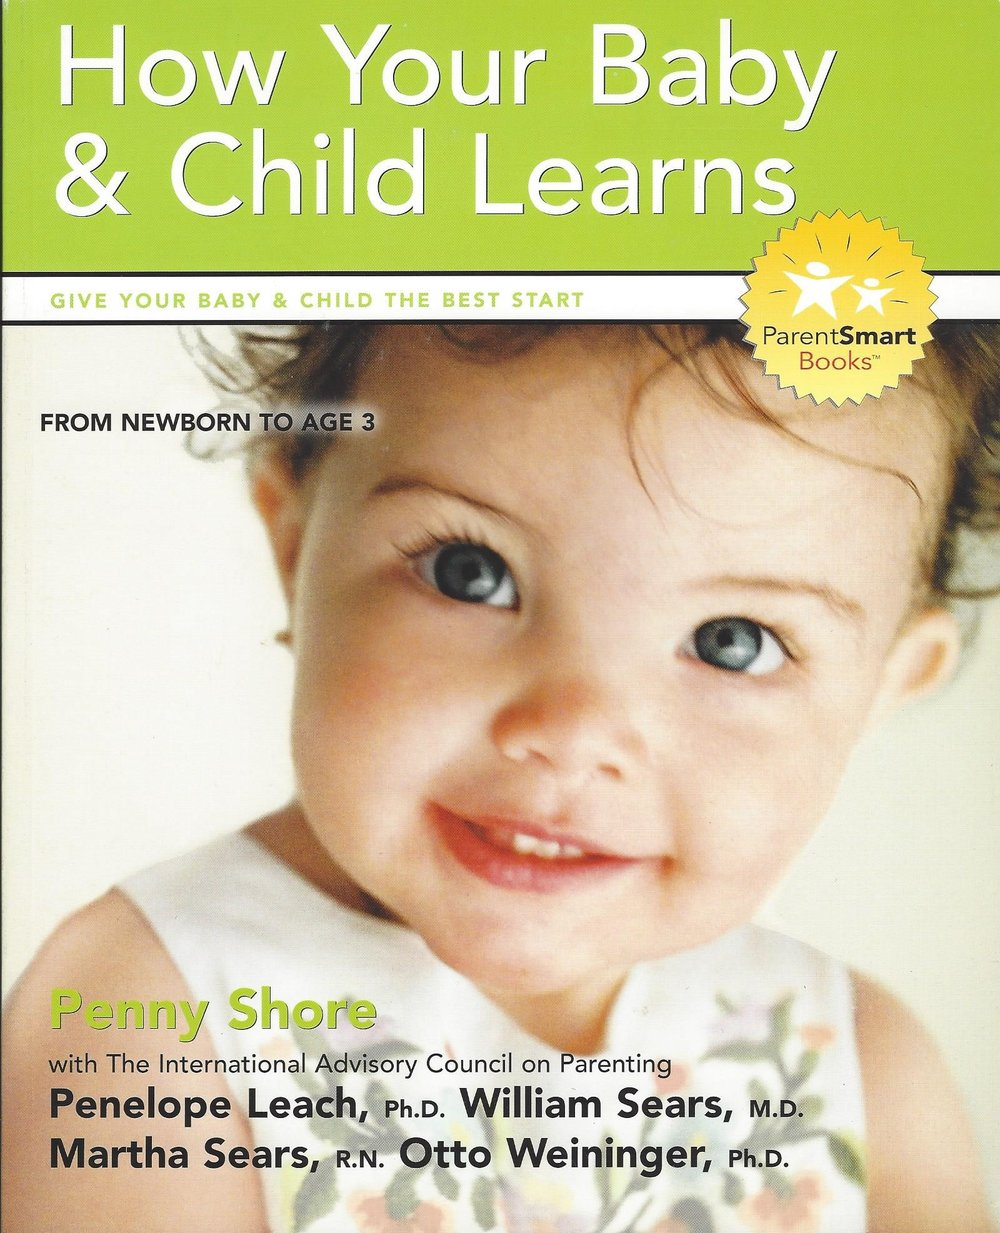 - How Your Baby and Child LearnsBy Penny Shore with Penelope Leach, Ph.D., William Sears, M.D., Martha Sears, R.N., Otto Weininger, Ph.D.